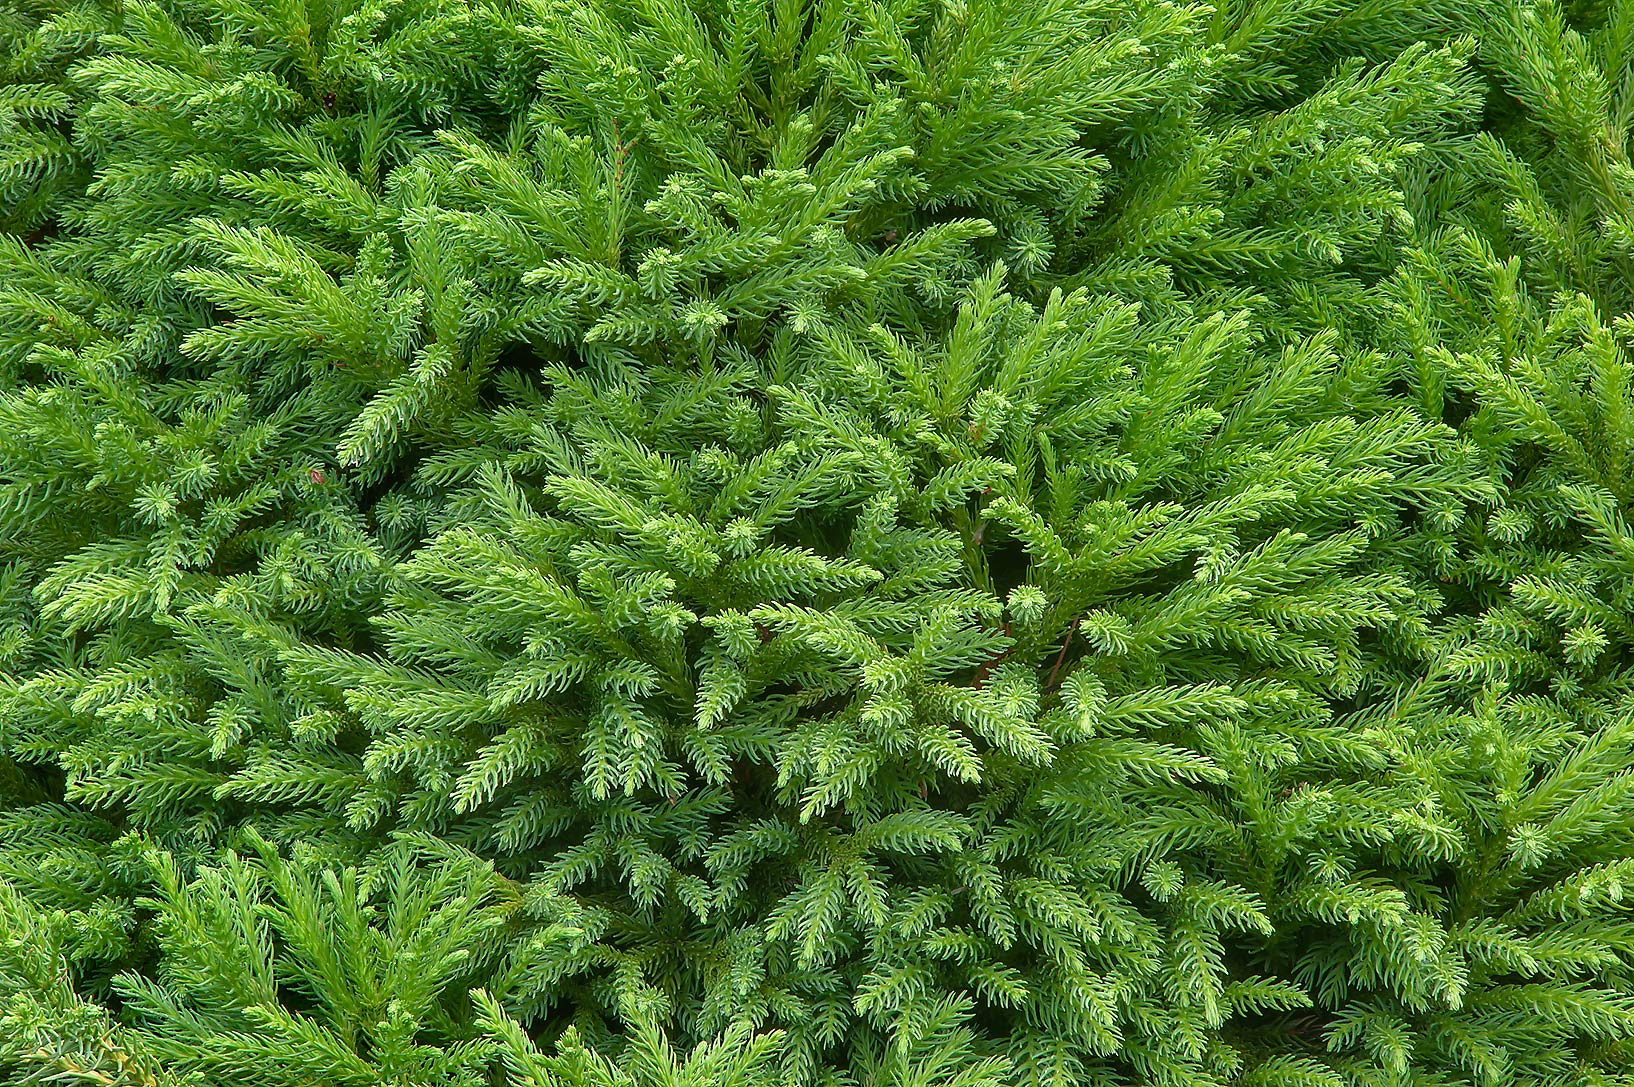 Japanese cedar (Cryptomeria japonica 'Compacta...Gardens. Humble (Houston area), Texas